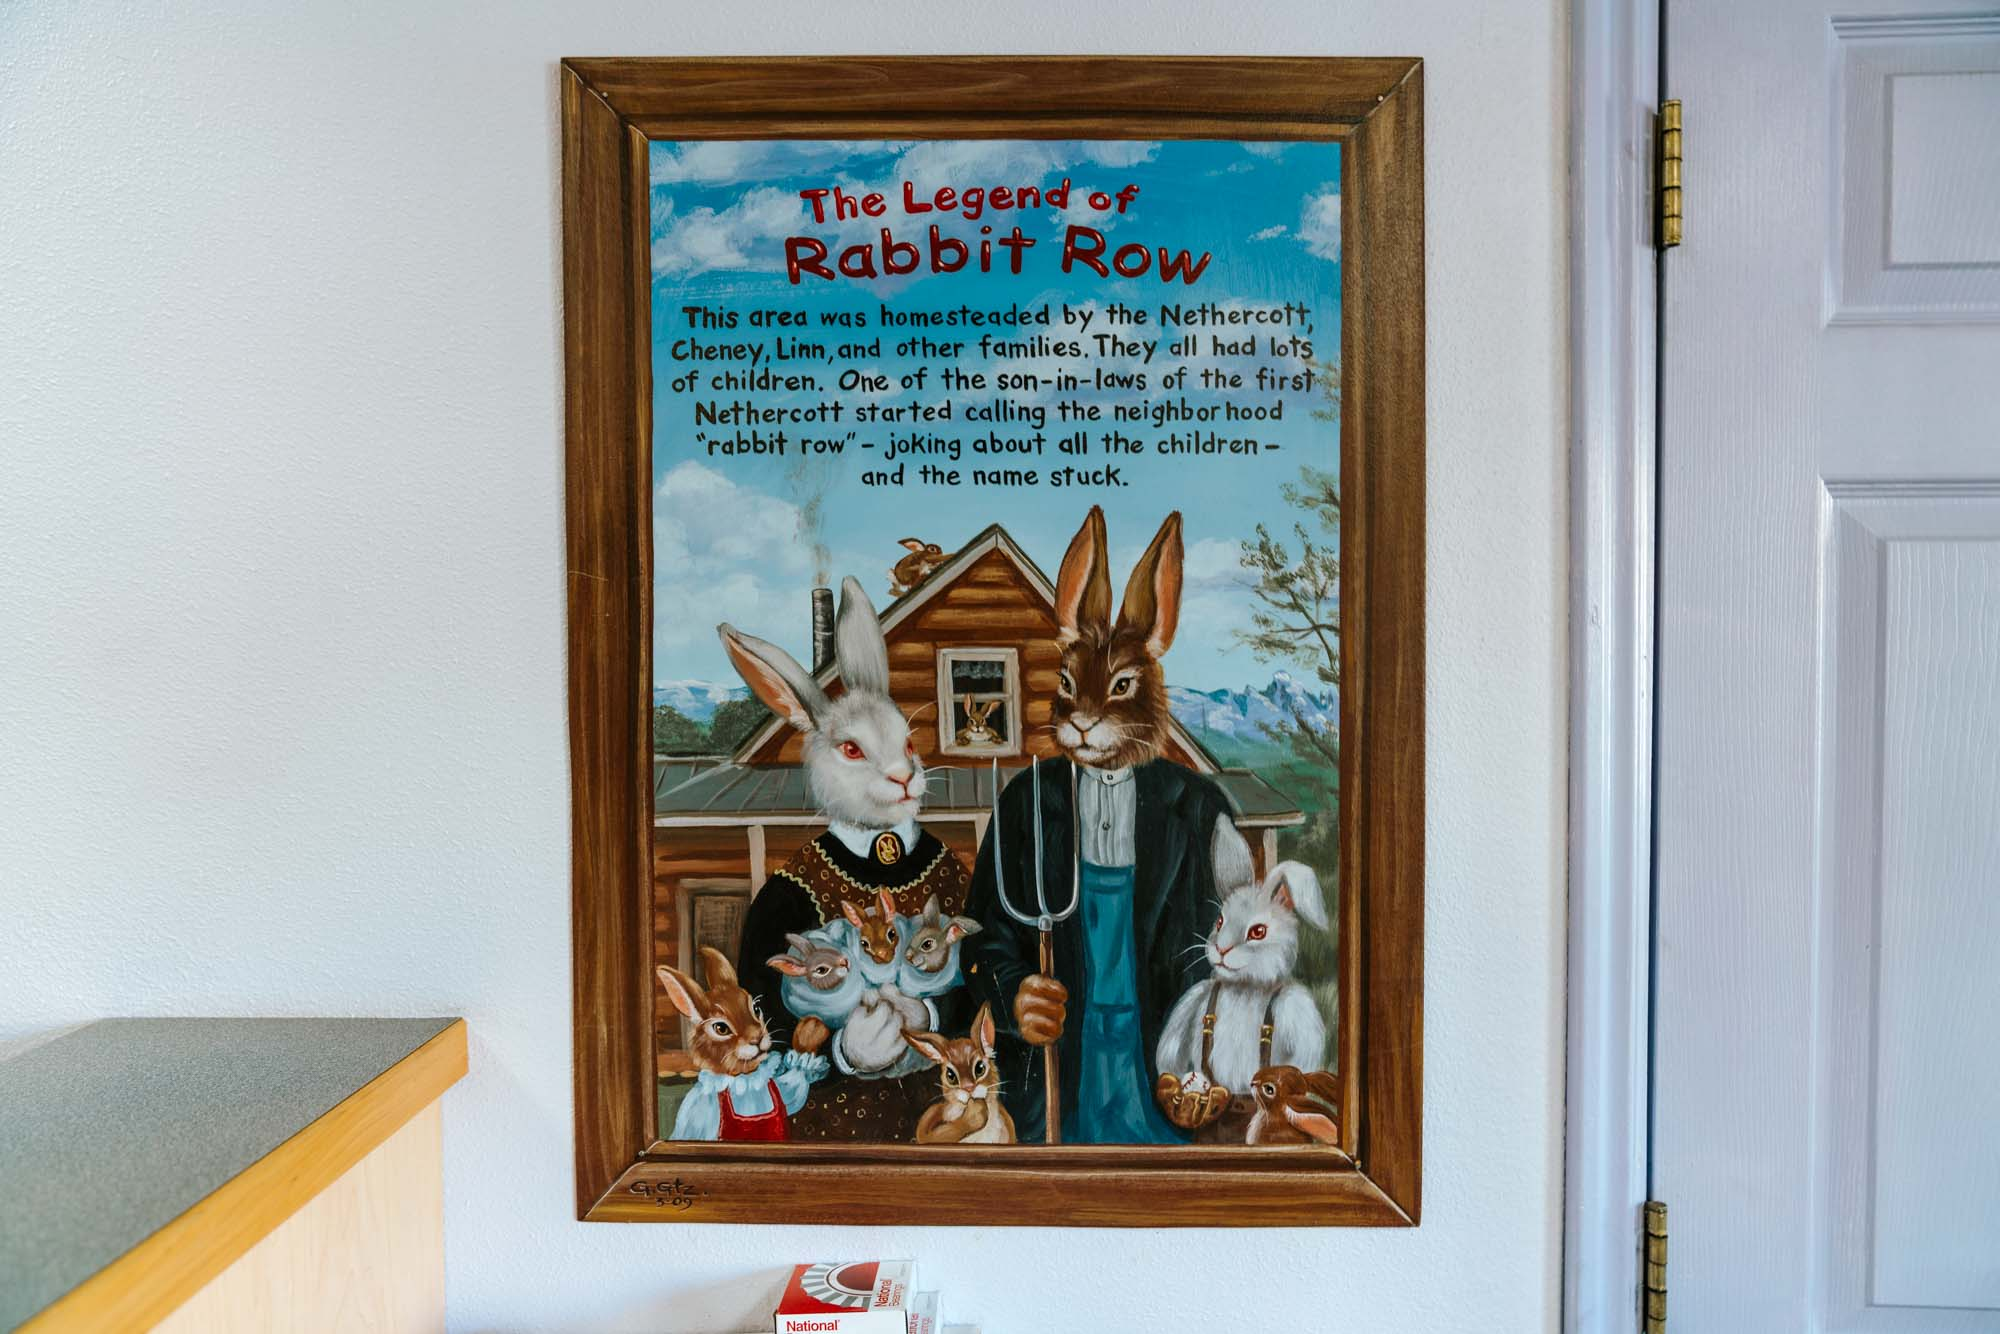 """The Legend of """"Rabbit Row""""  The area of Wilson / Jackson Hole, Wyoming where Rabbit Row Repair is located was settled by the Nethercott, Linn, Cheney and other families. As the neighborhood grew, it became known for the large families who homesteaded the area situated below Teton Pass, and along the Snake River.  A son in-law of the original Nethercott's enjoyed joking about the abundance of children, and humorously referred to it as """"Rabbit Row"""". The name stuck and was a common reference in Wilson's early history."""